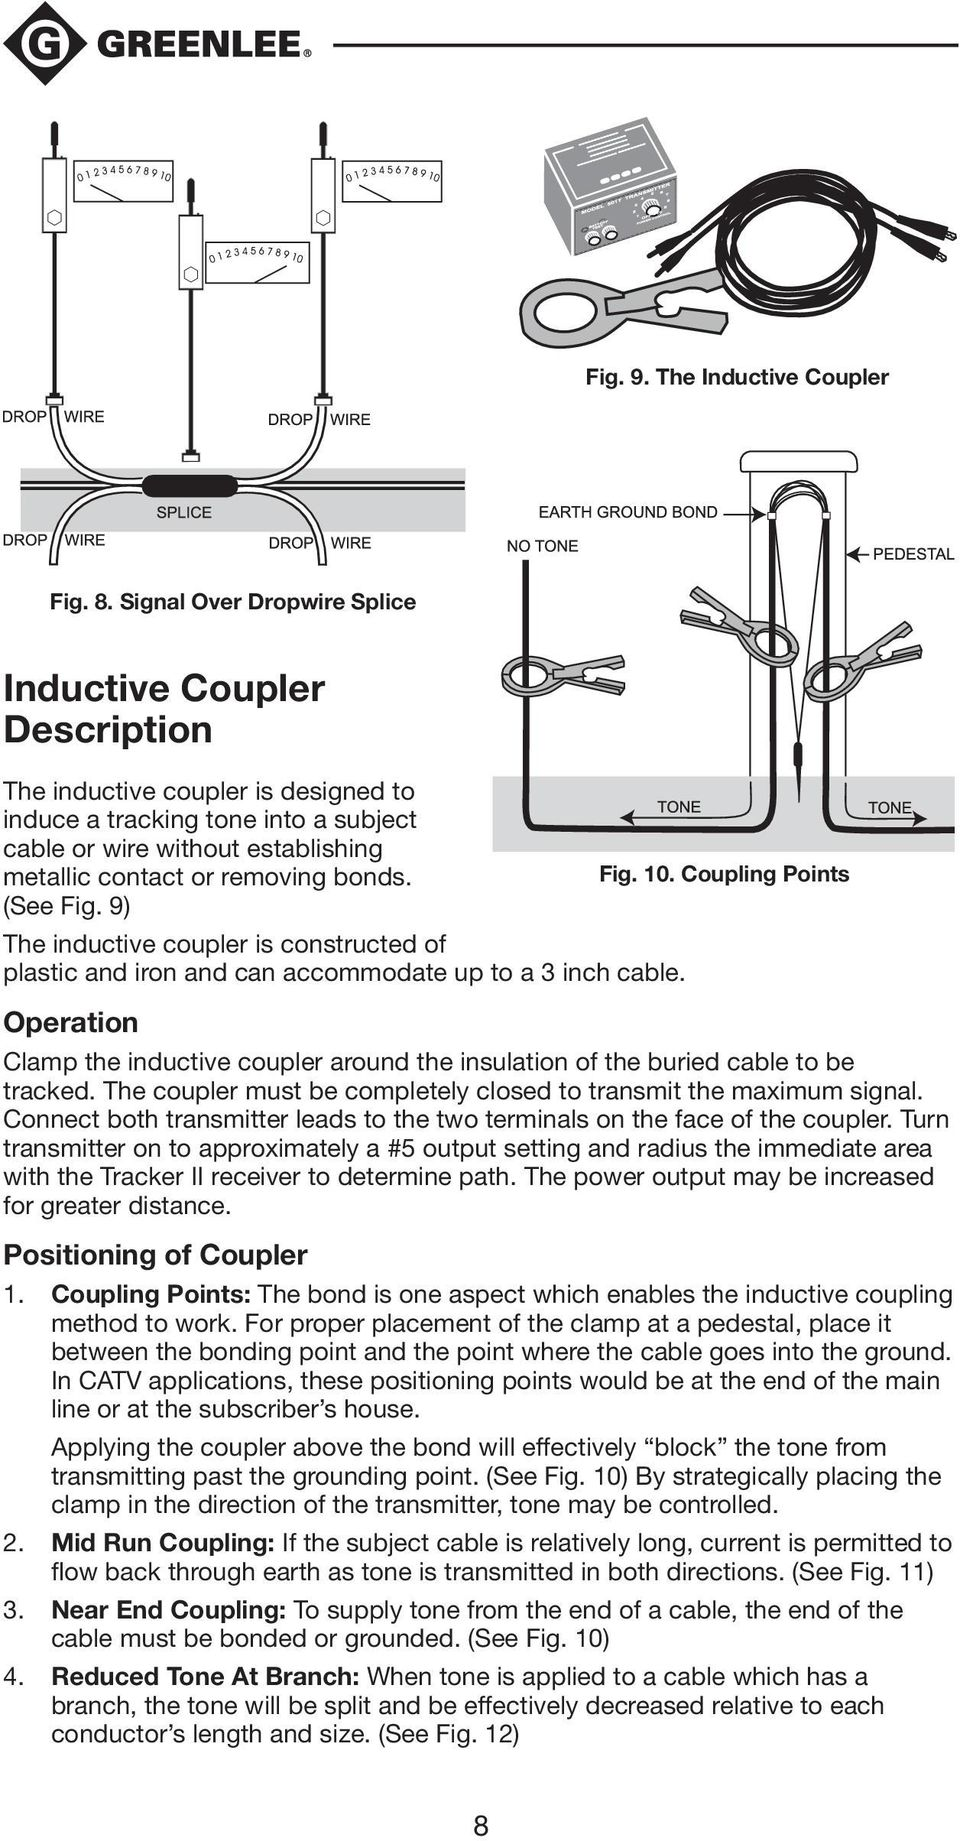 bonds. Fig. 10. Coupling Points (See Fig. 9) The inductive coupler is constructed of plastic and iron and can accommodate up to a 3 inch cable.